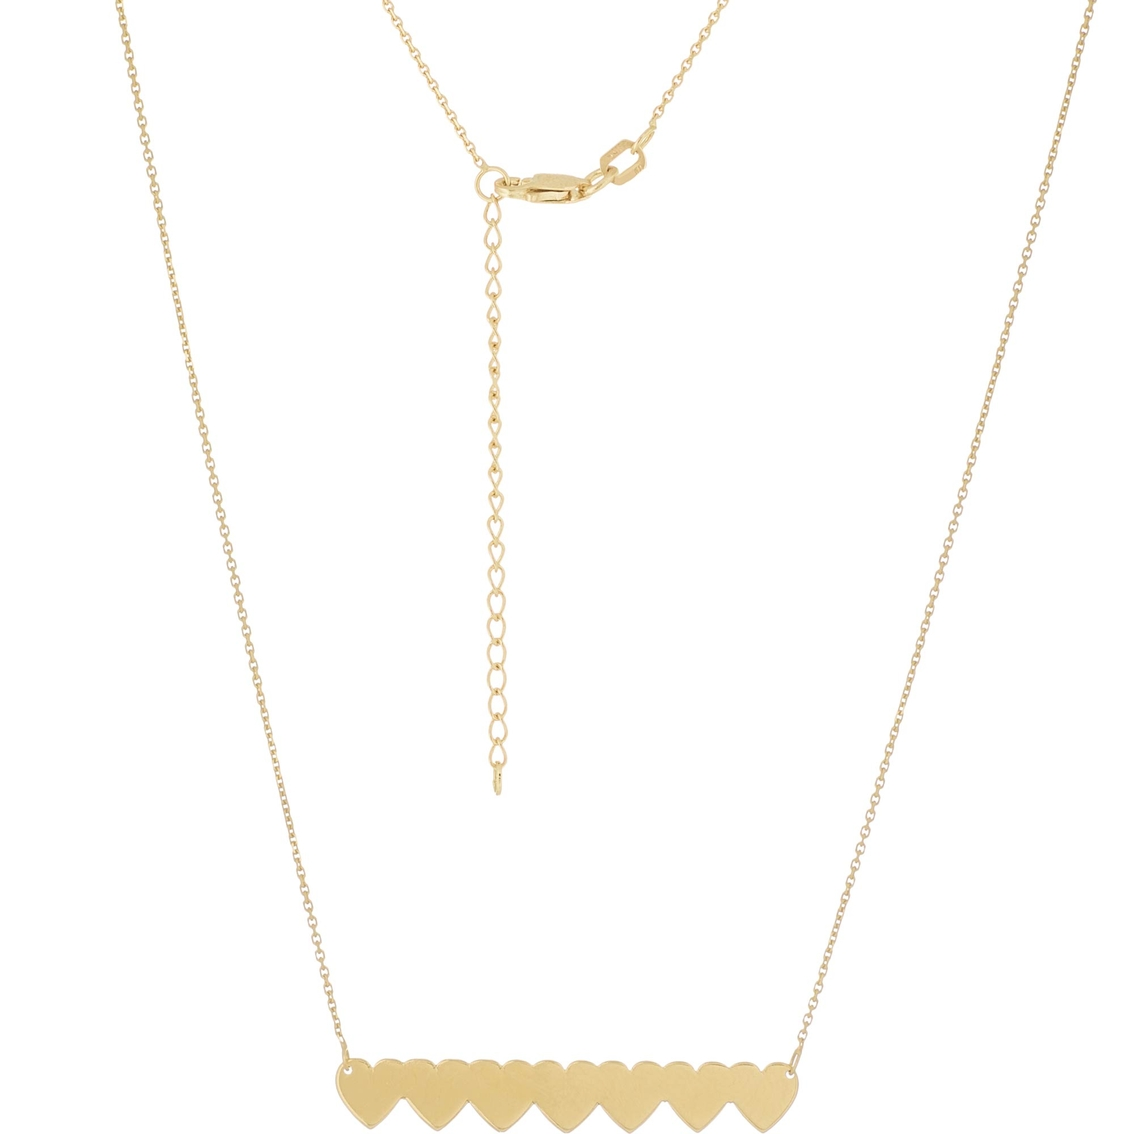 14K Yellow Gold Military Plane Pendant on an Adjustable 14K Yellow Gold Chain Necklace